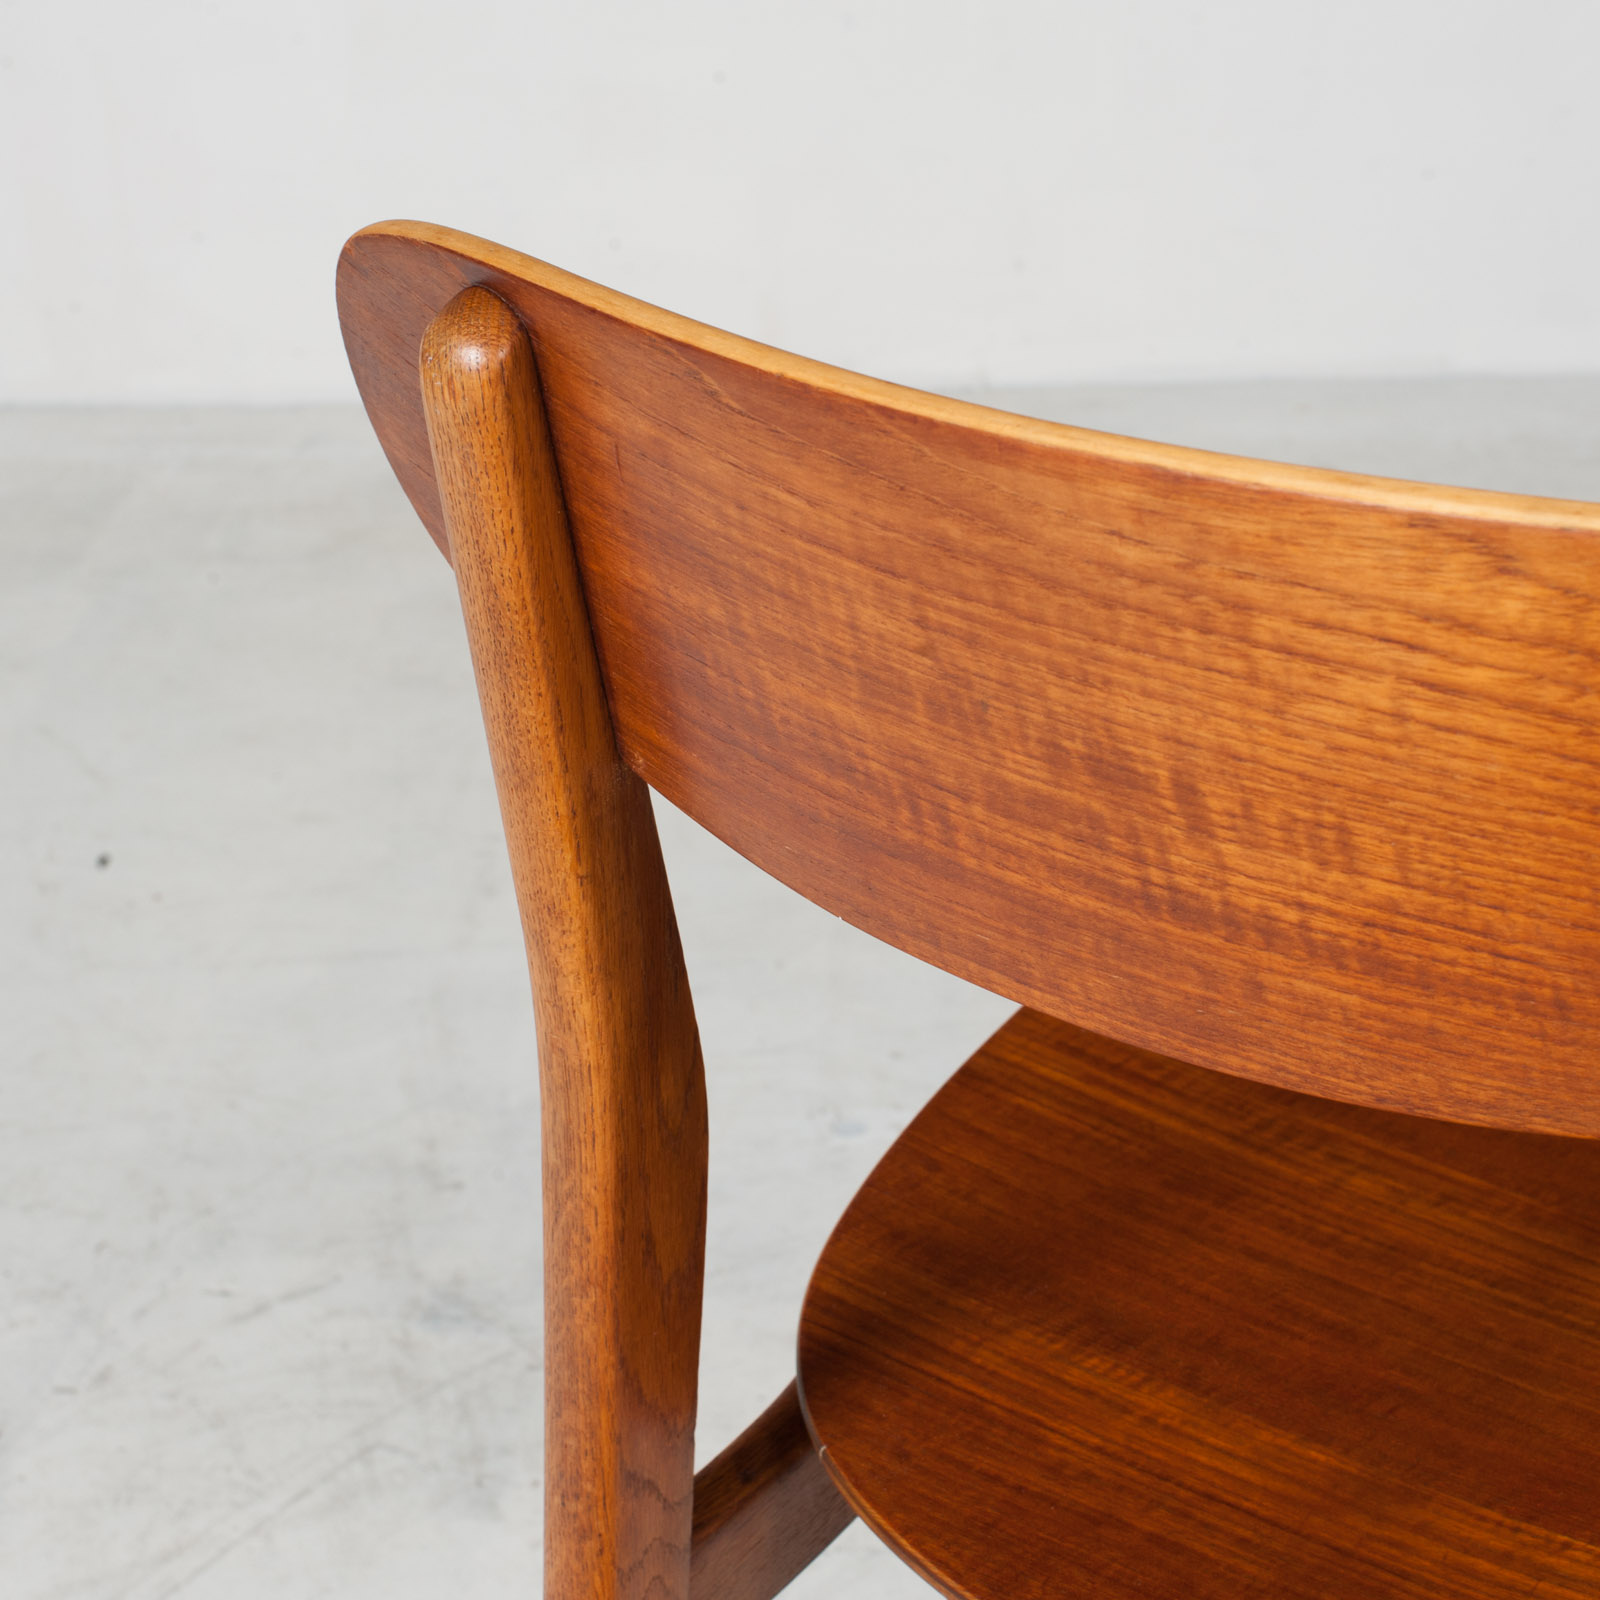 Set Of 4 Round Back Dining Chairs In Teak 1960s Denmark14